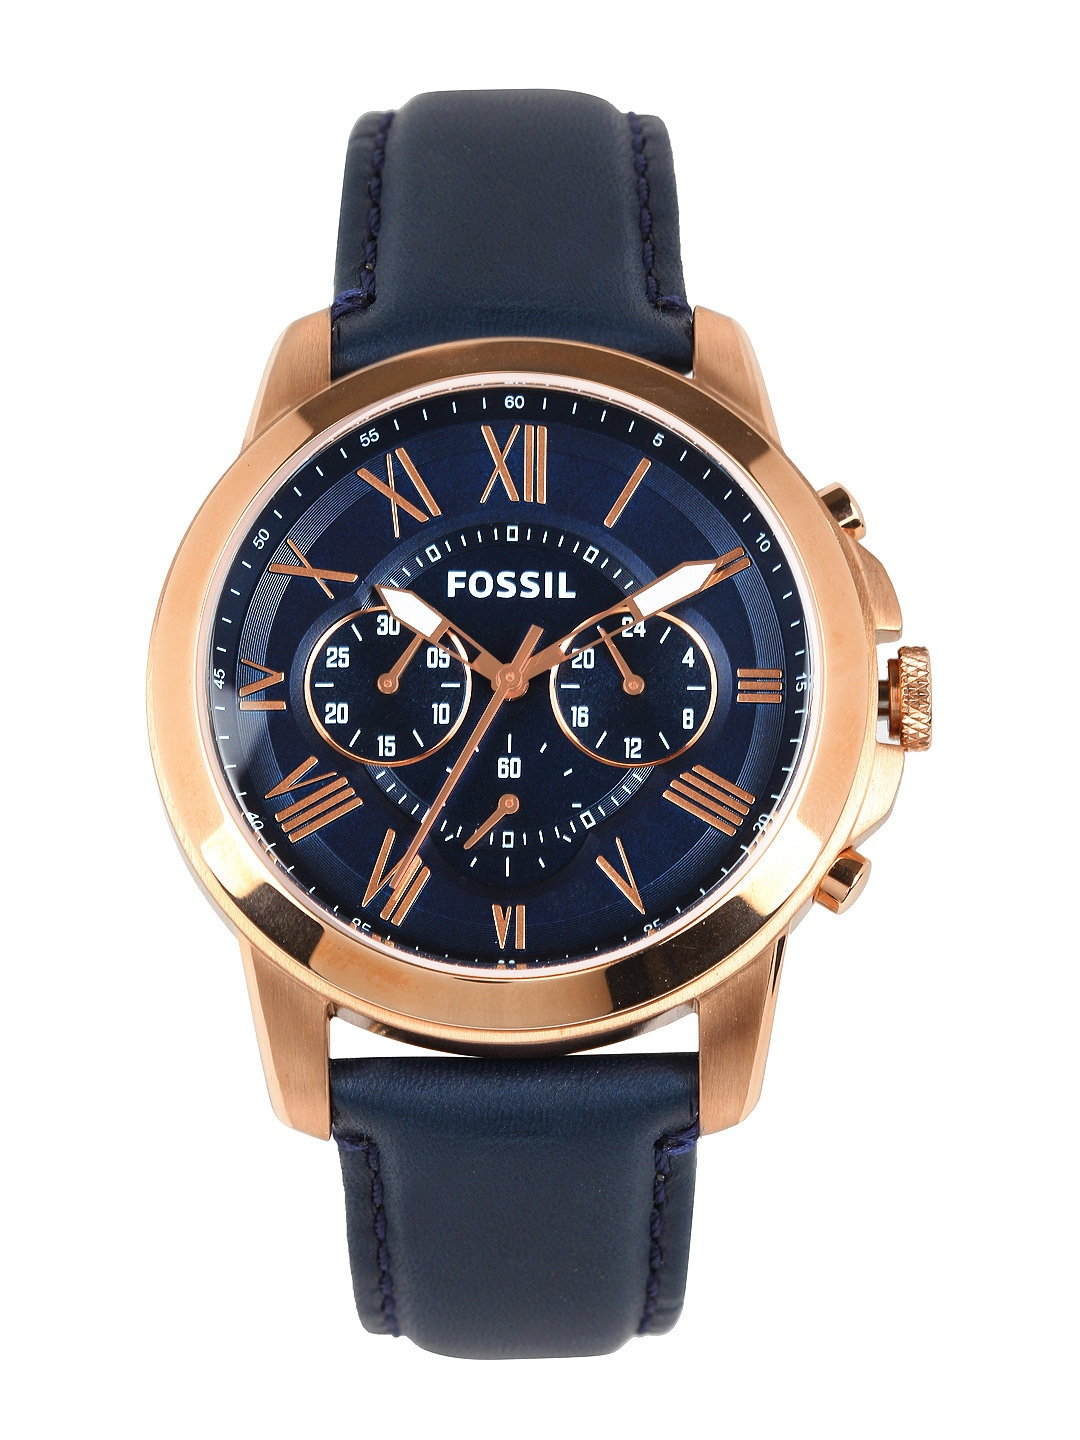 Fossil Men Navy Dial Chronograph Watch FS4835I